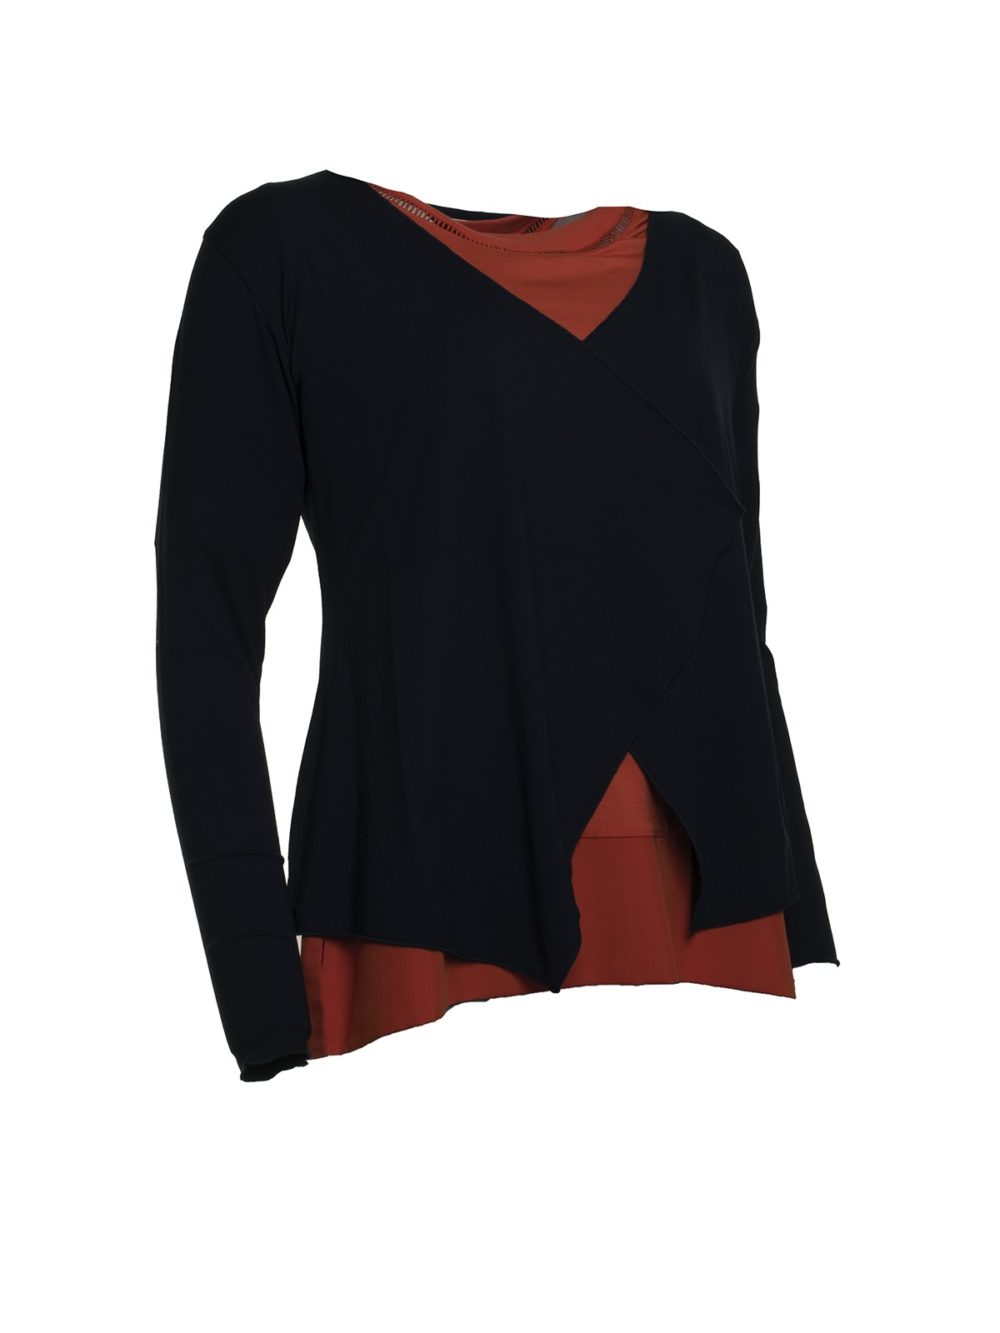 Itally Basic Top Masai Clothing Katie Kerr Women's Clothing